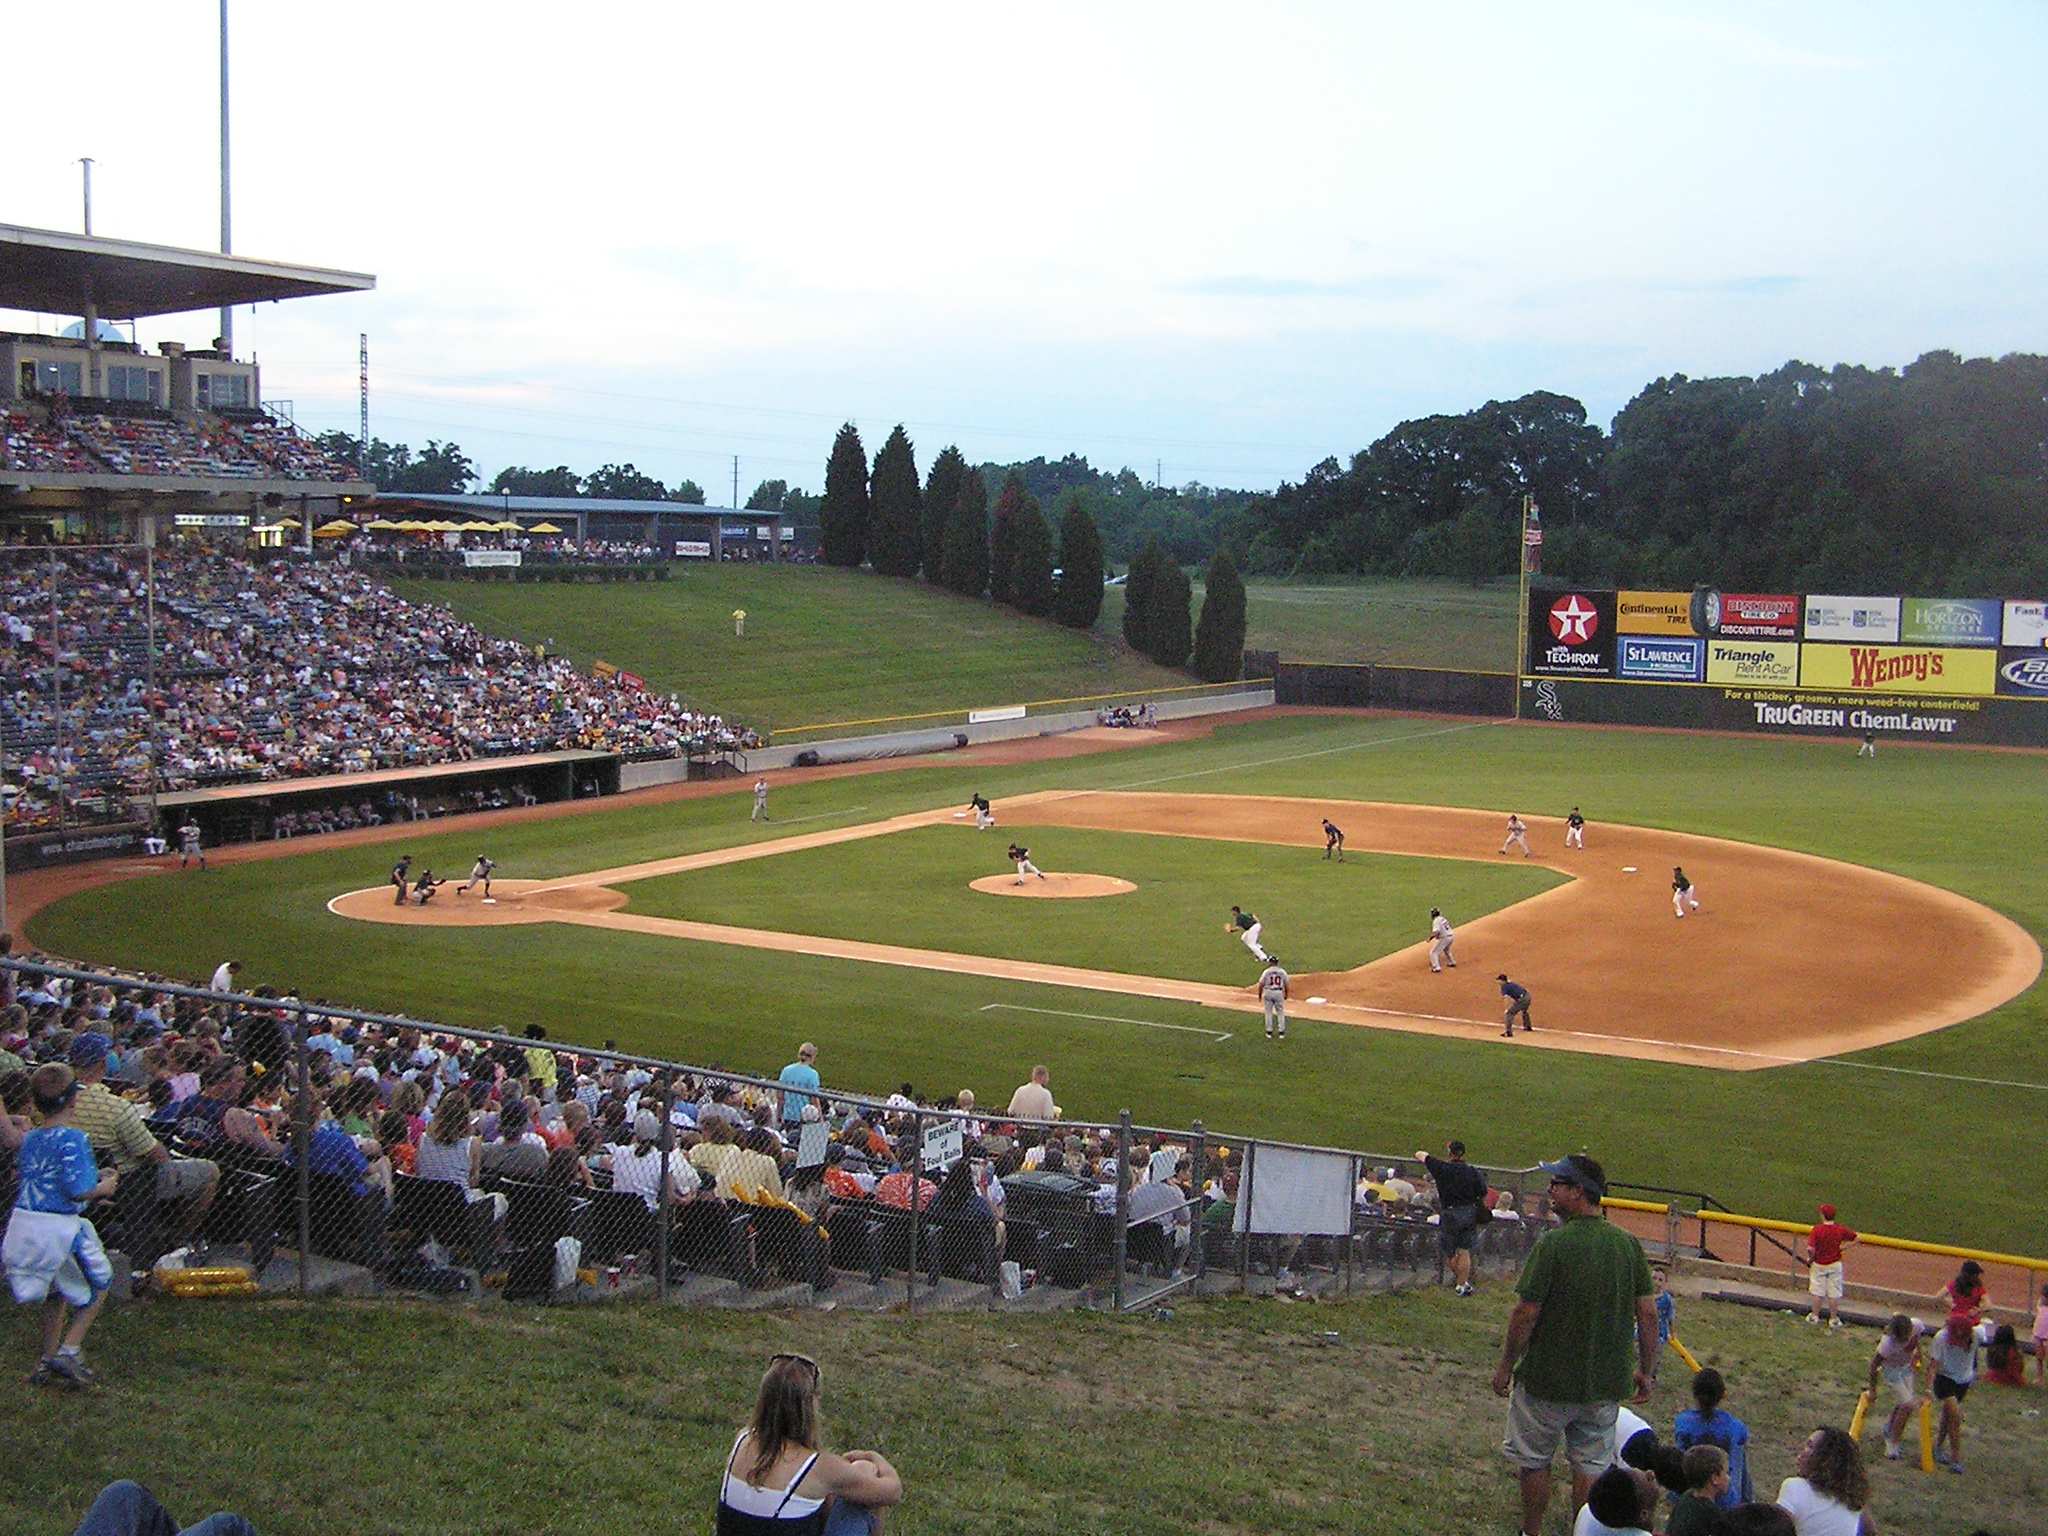 Knights Stadium from the first base side